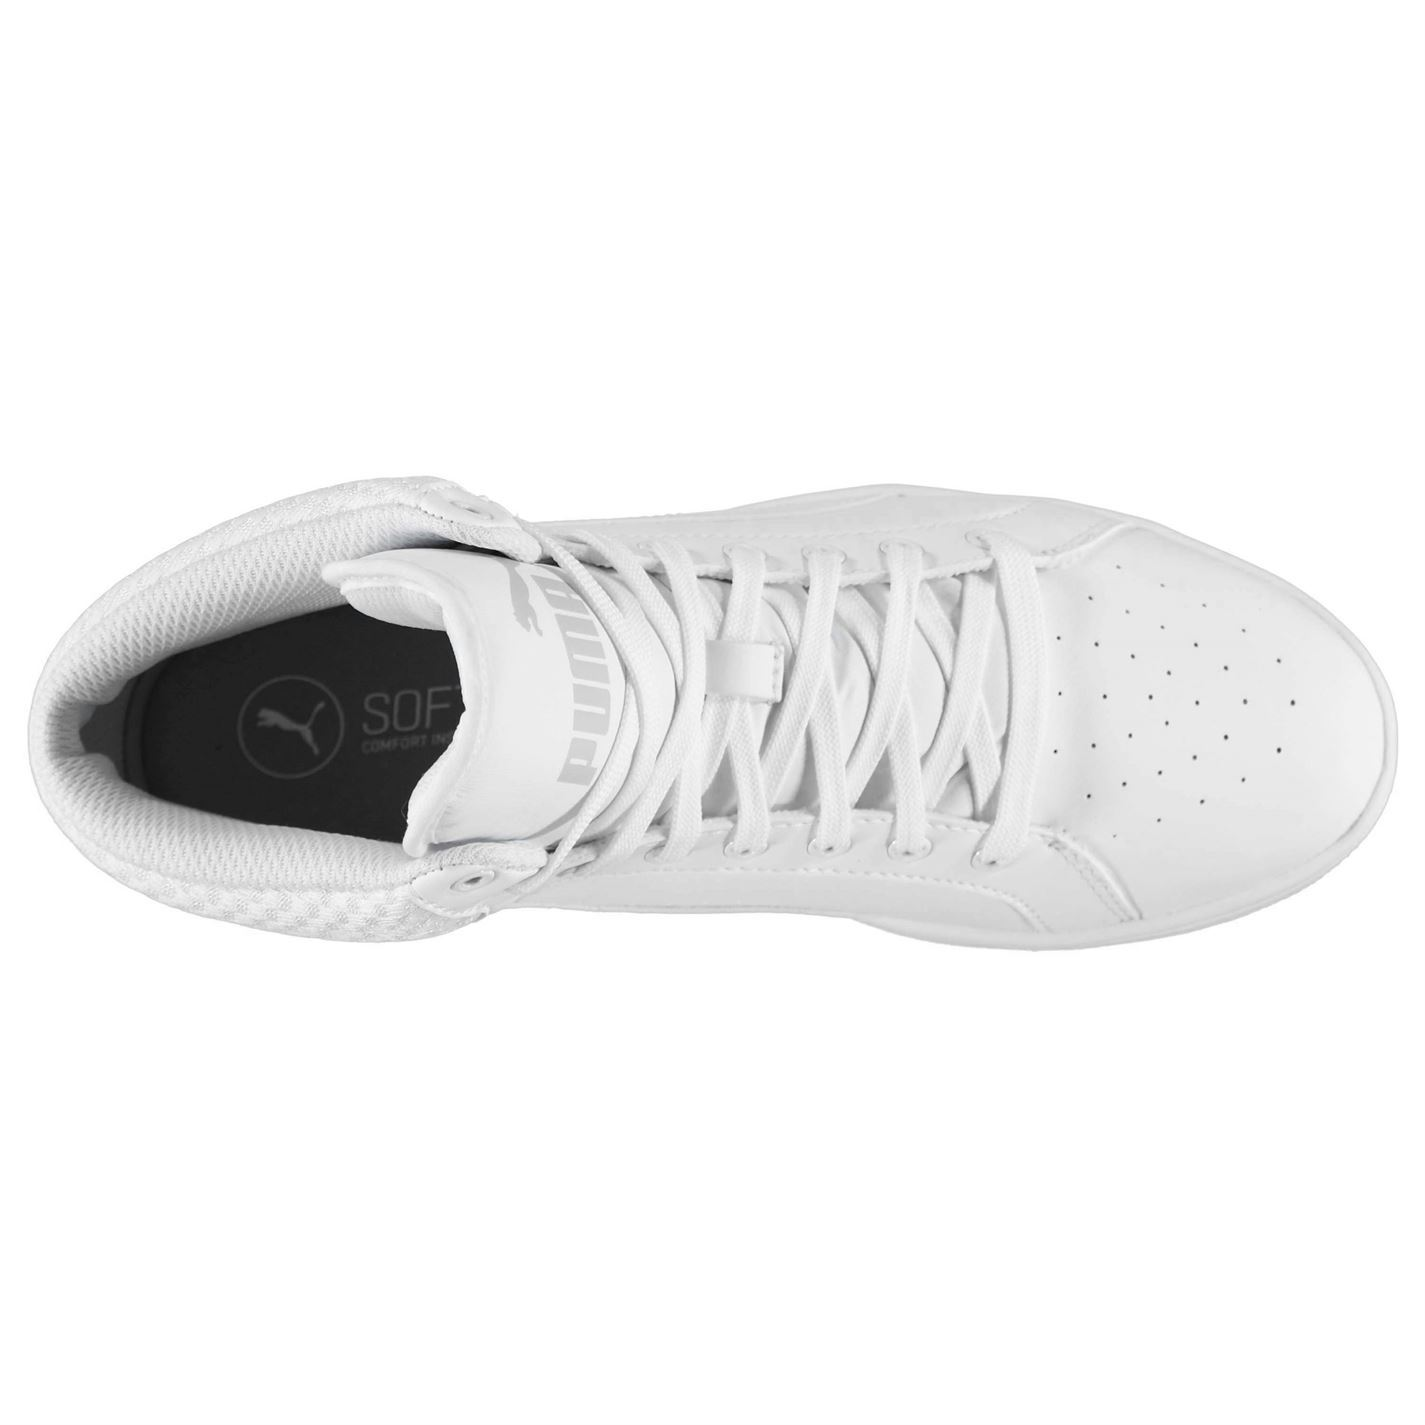 Puma Ikaz Mid Top Trainers Womens White Sports Trainers Sneakers  b12d0c11f